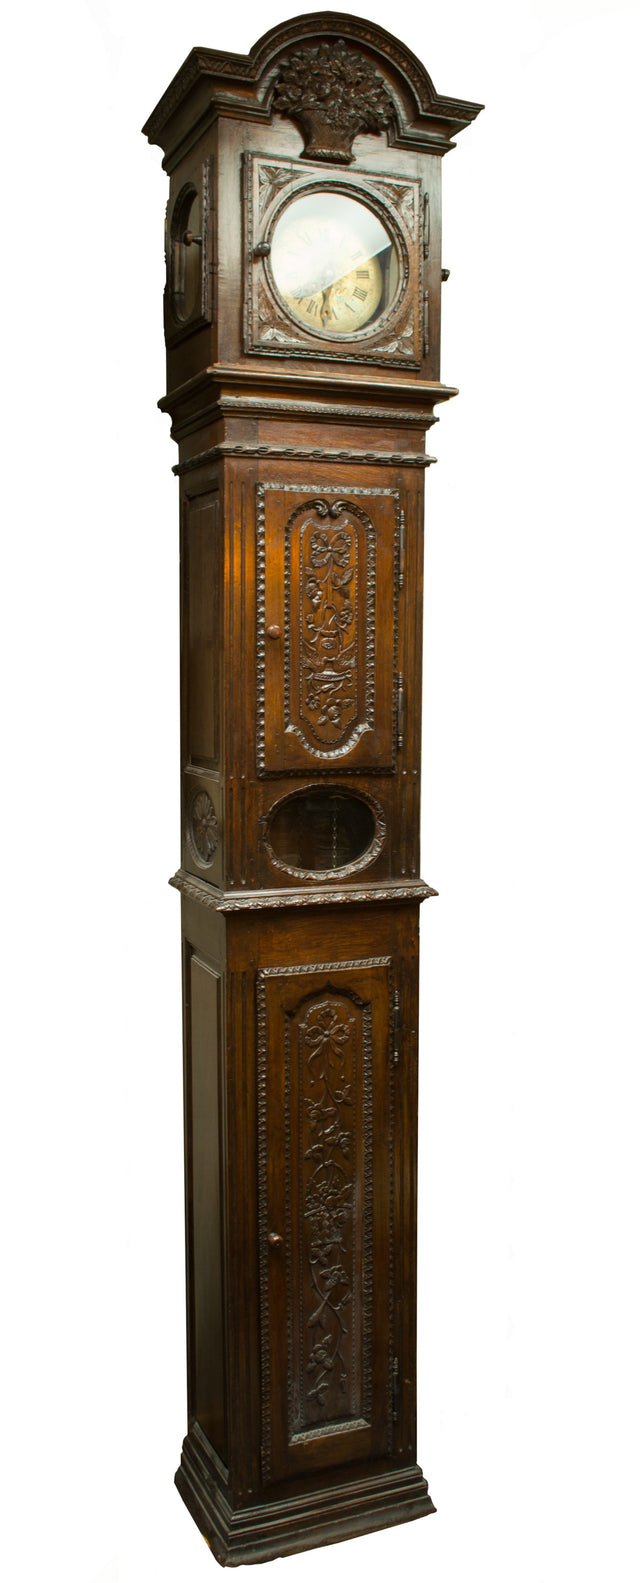 An 18th-Century French Long Case Clock from Normandy